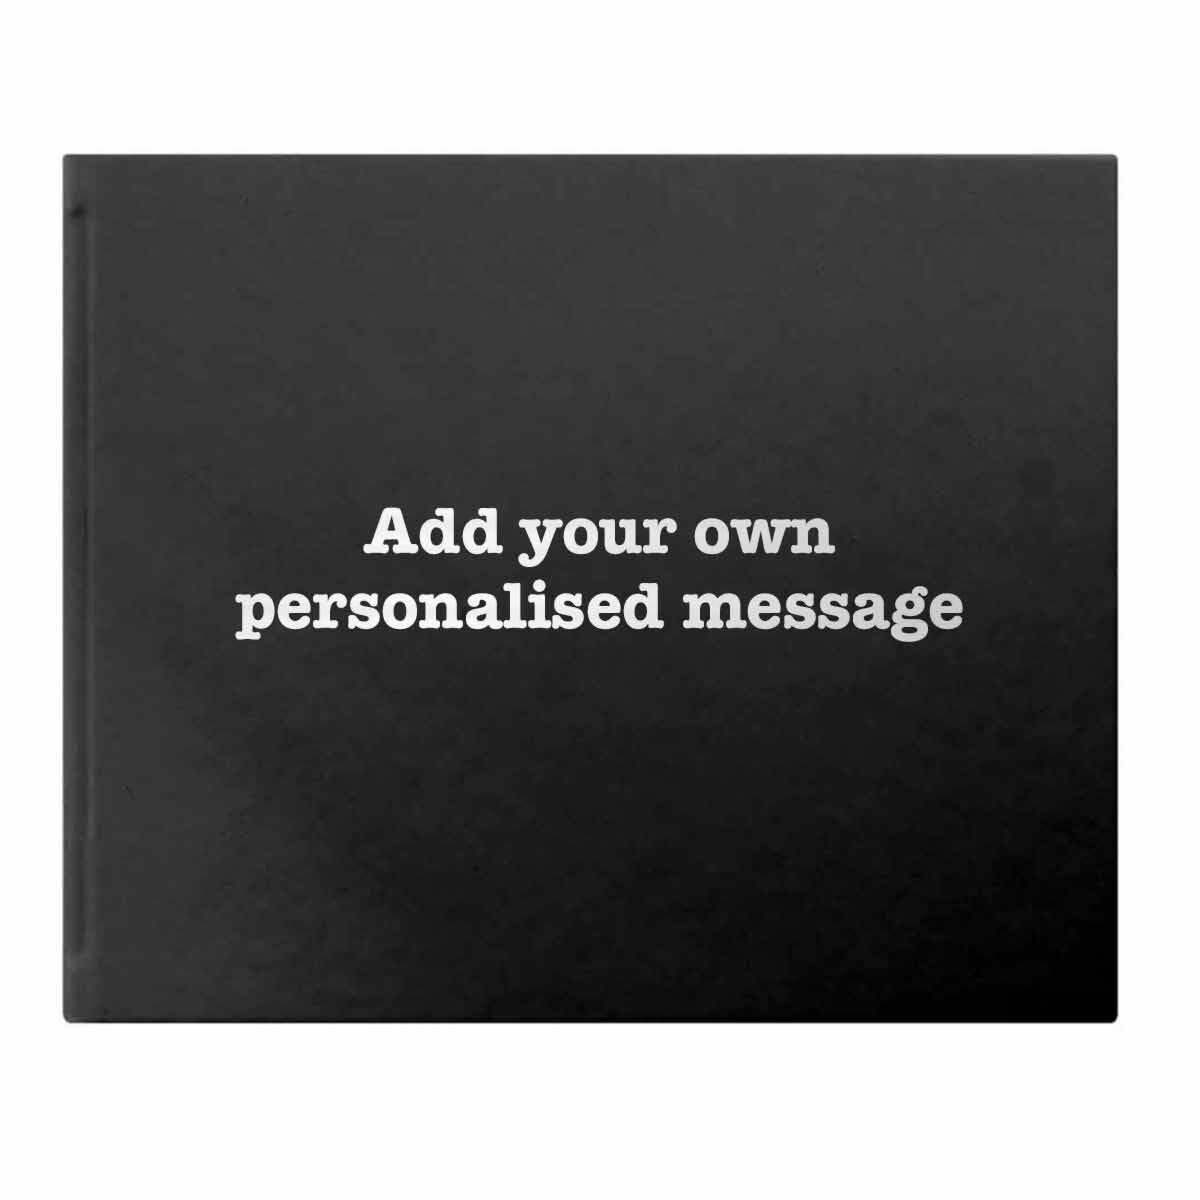 Letts Dazzle Personalised Occasions Typewriter Font Black